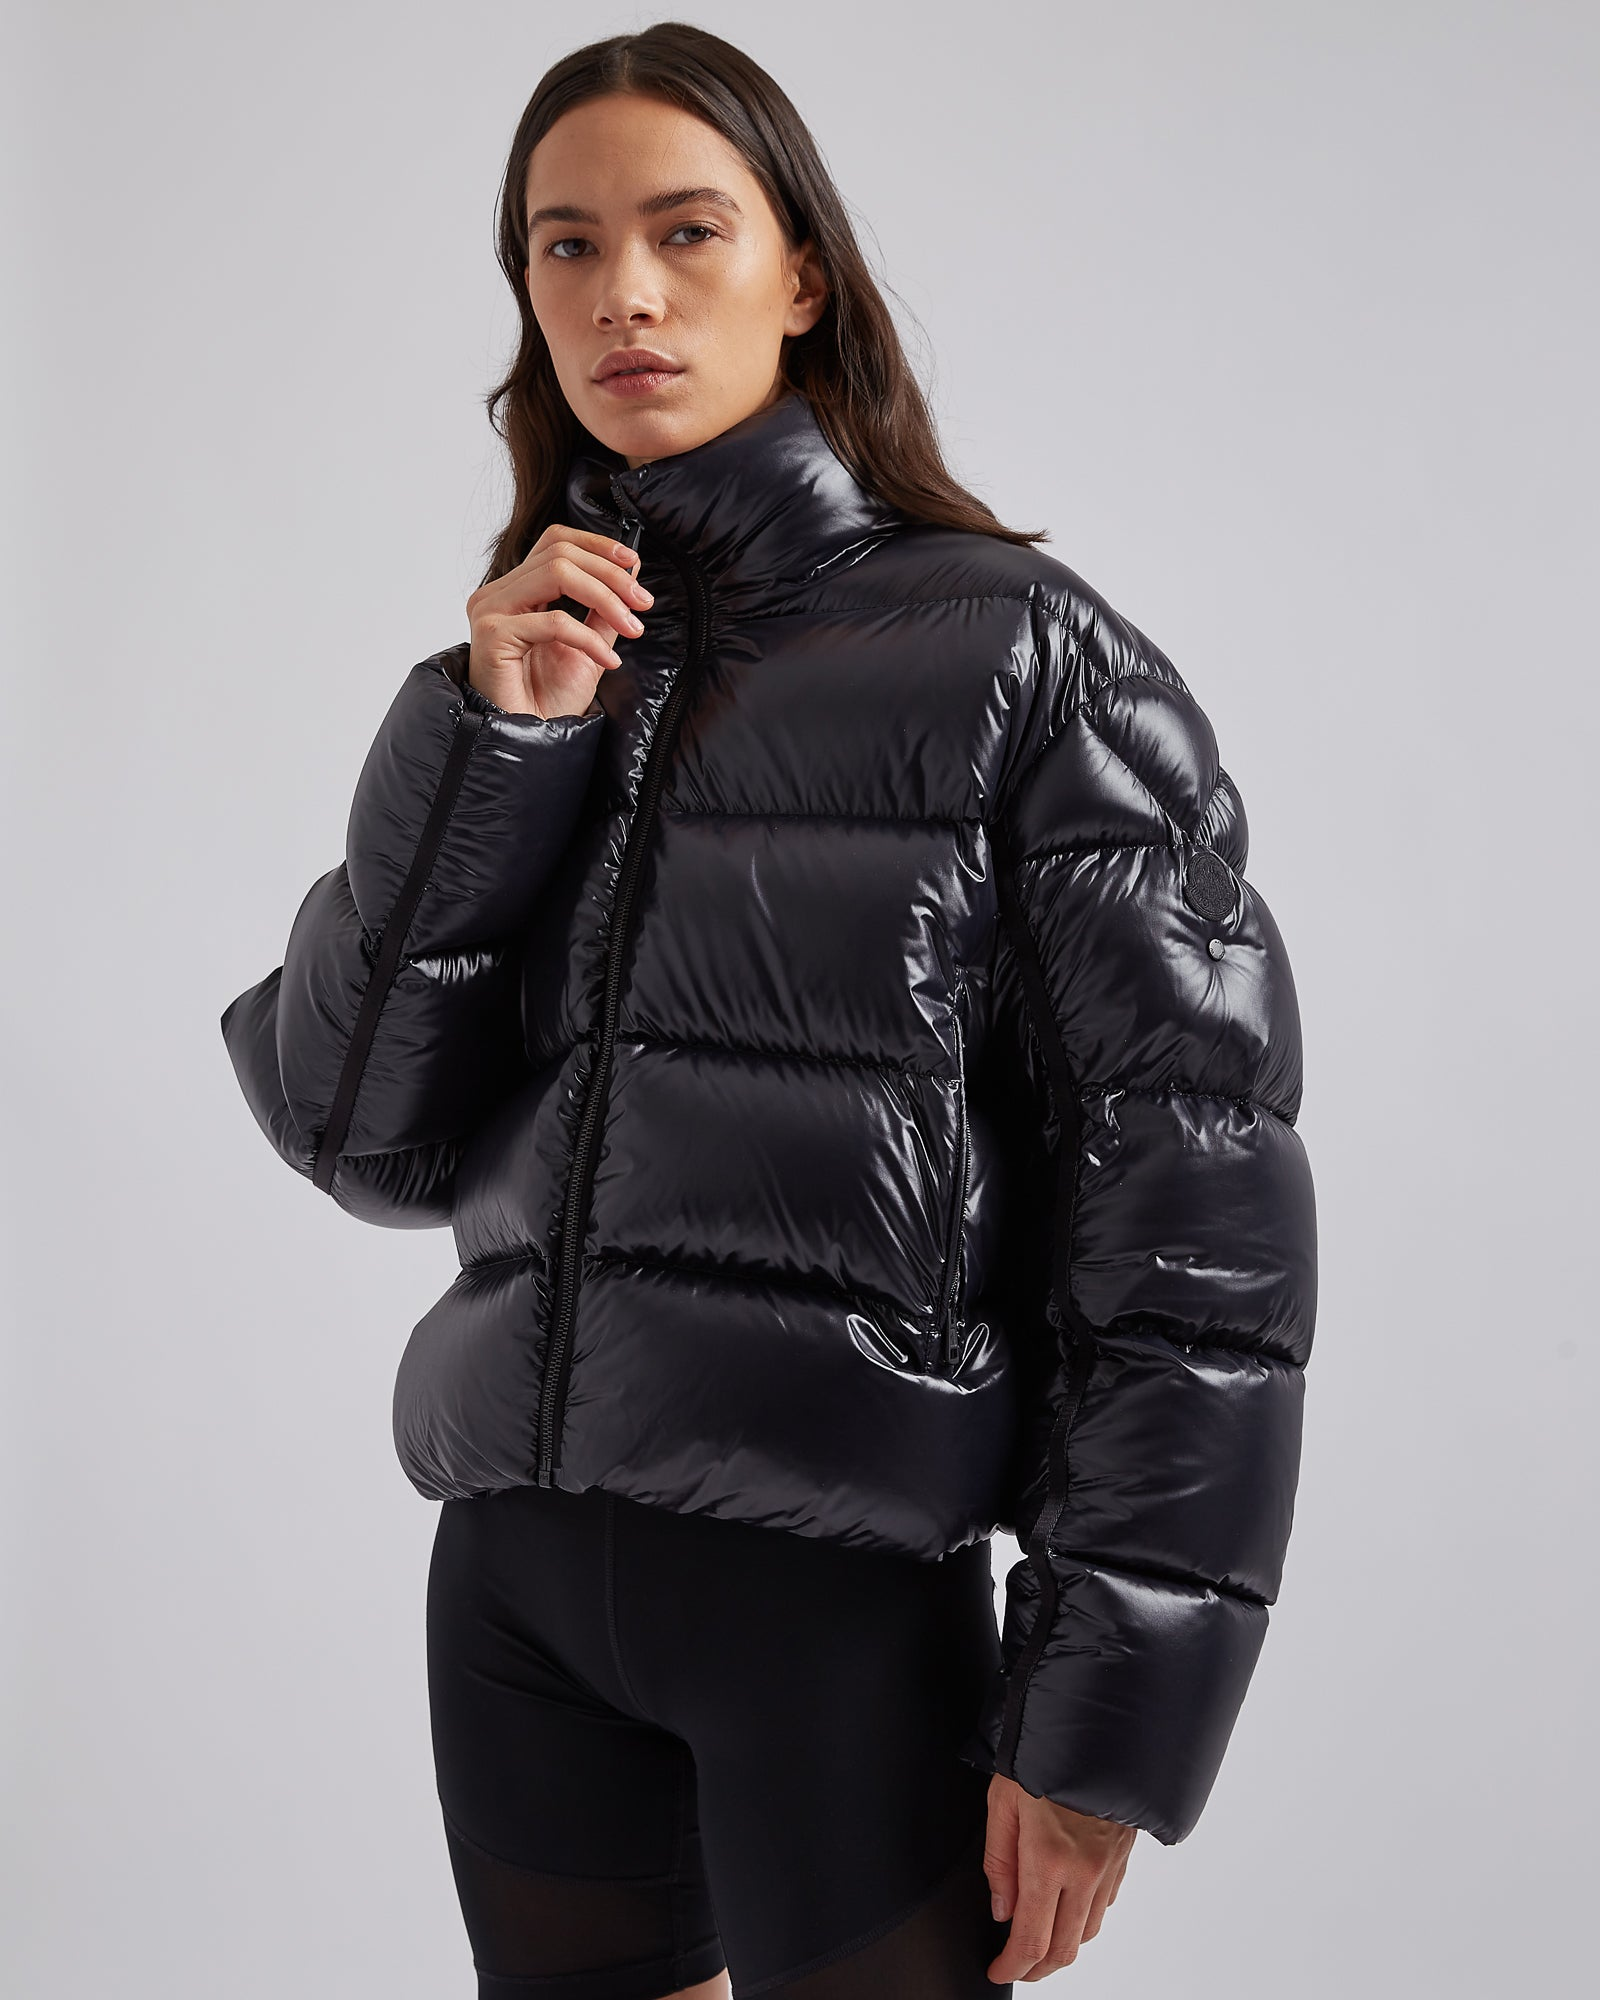 Caliste Jacket in Black